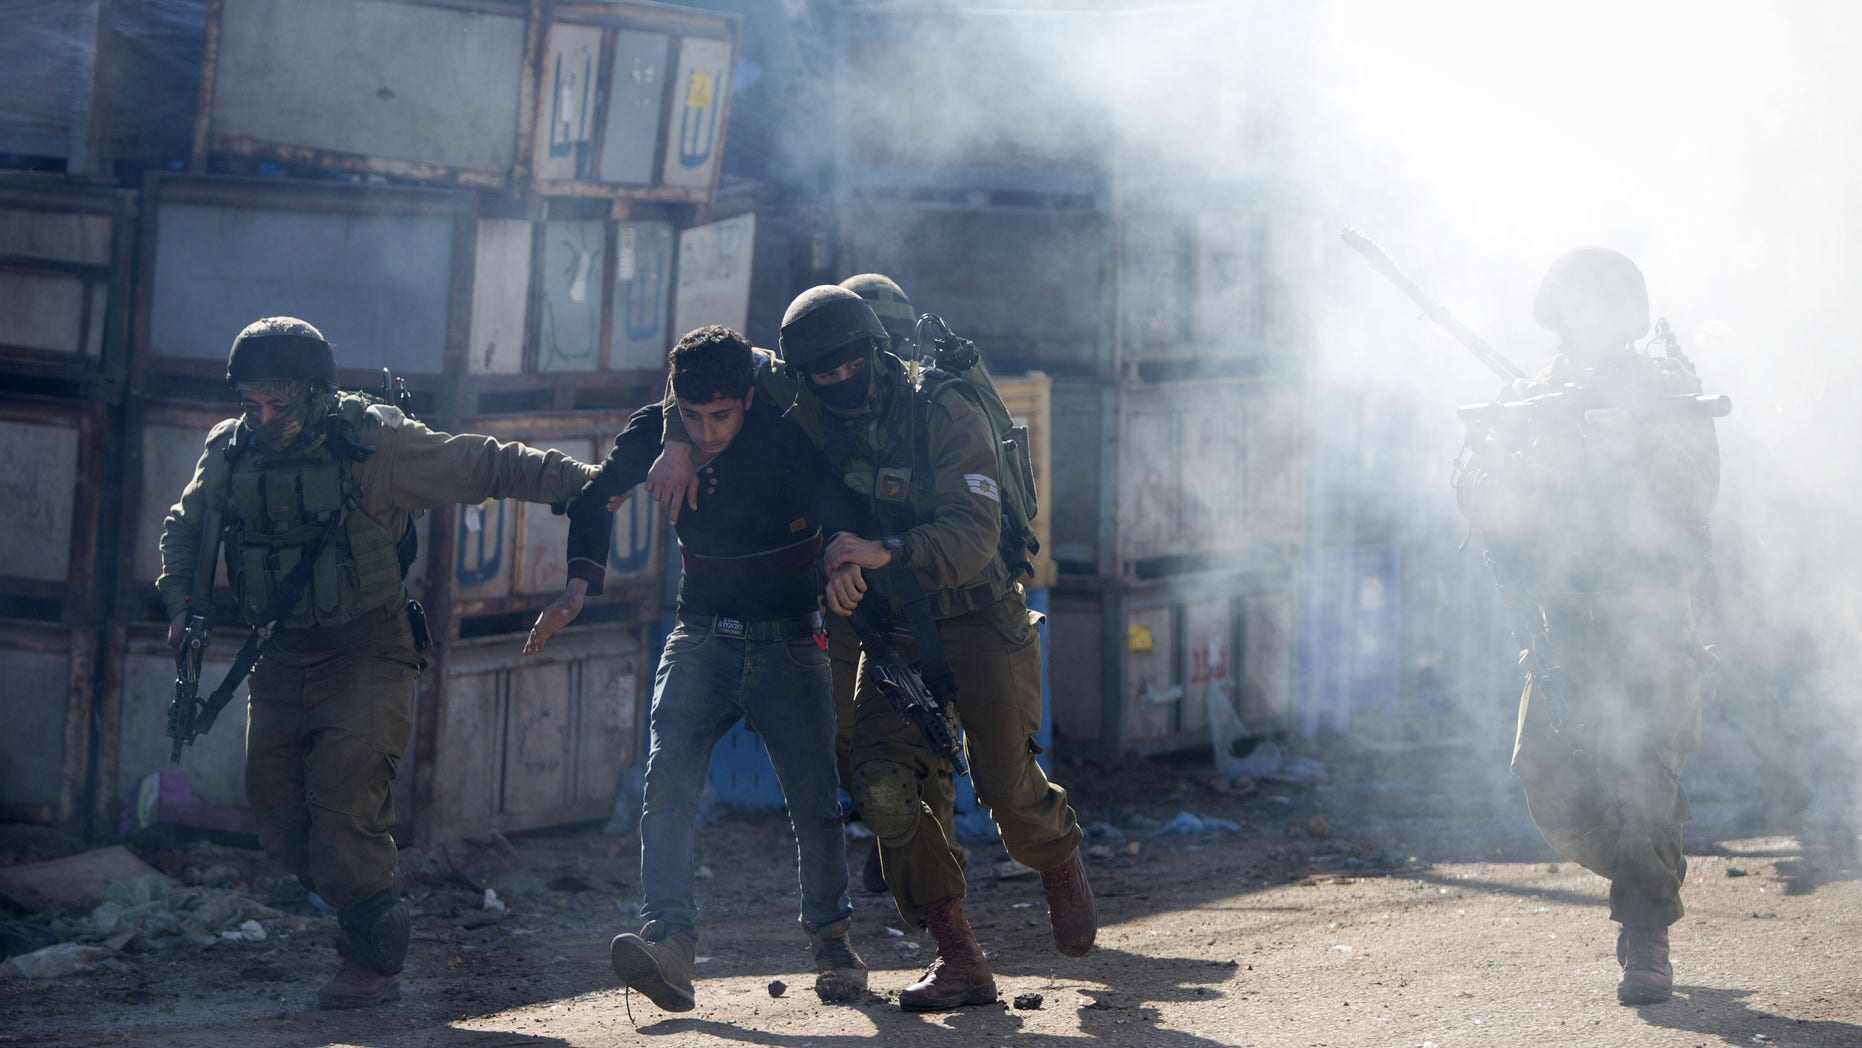 Israeli soldiers arrest a Palestinian protester during clashes in the West Bank village of Kabatiya Thursday.